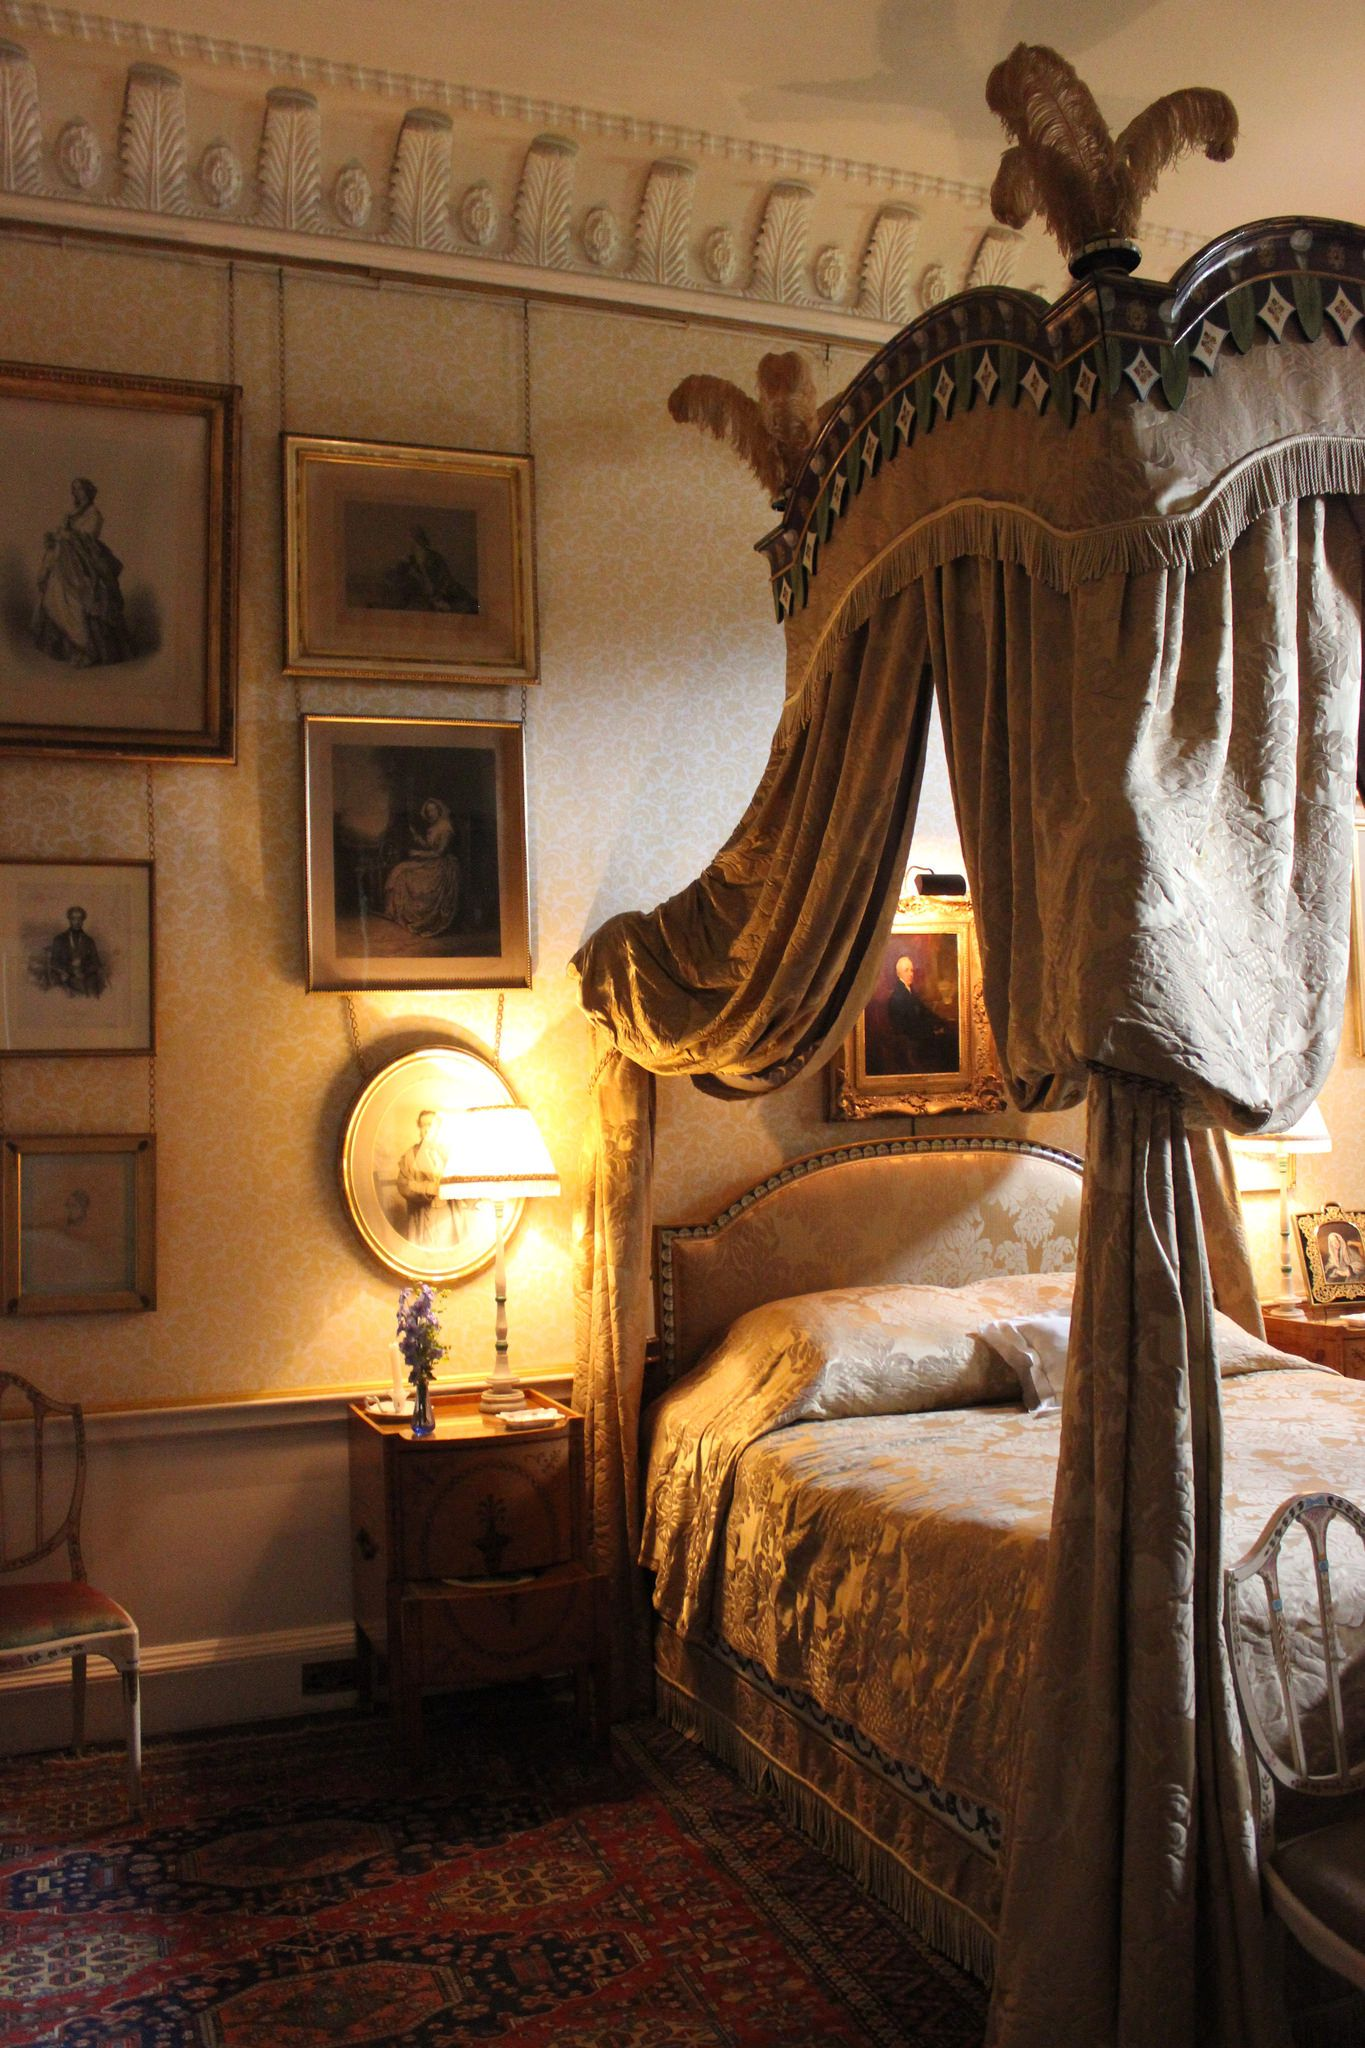 226 Antique canopy bed, Bed decor, Beauty bedrooms